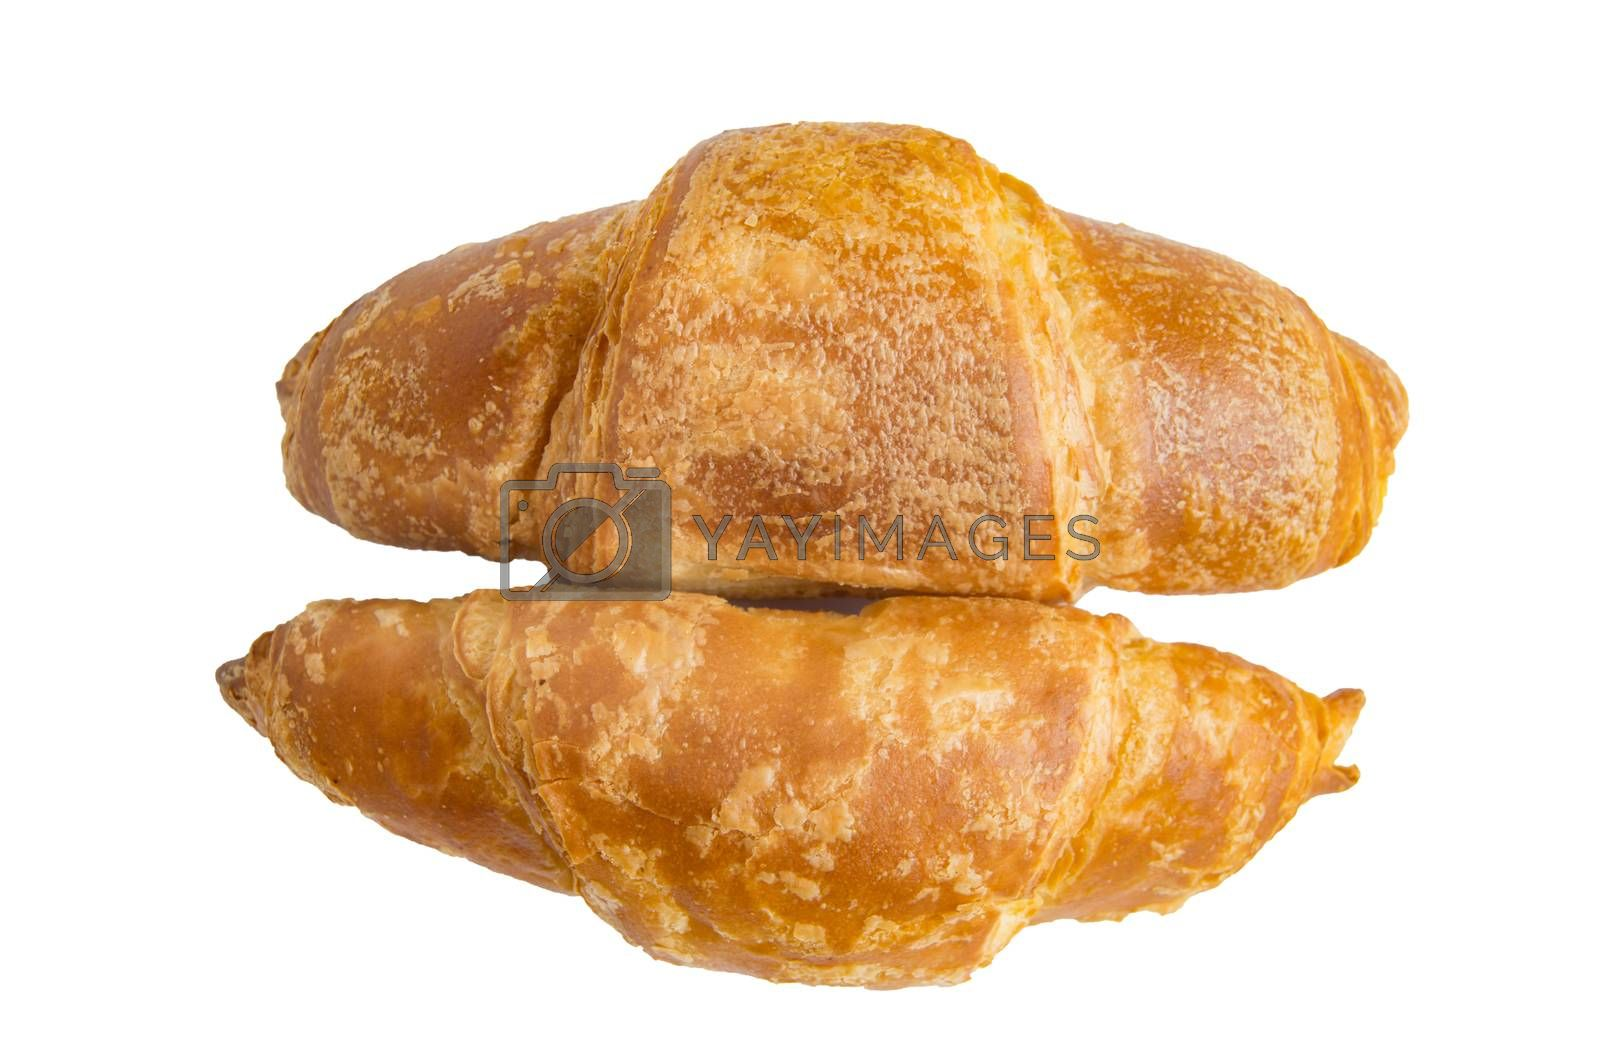 Two delicious croissants isolated on a white background by clipping.